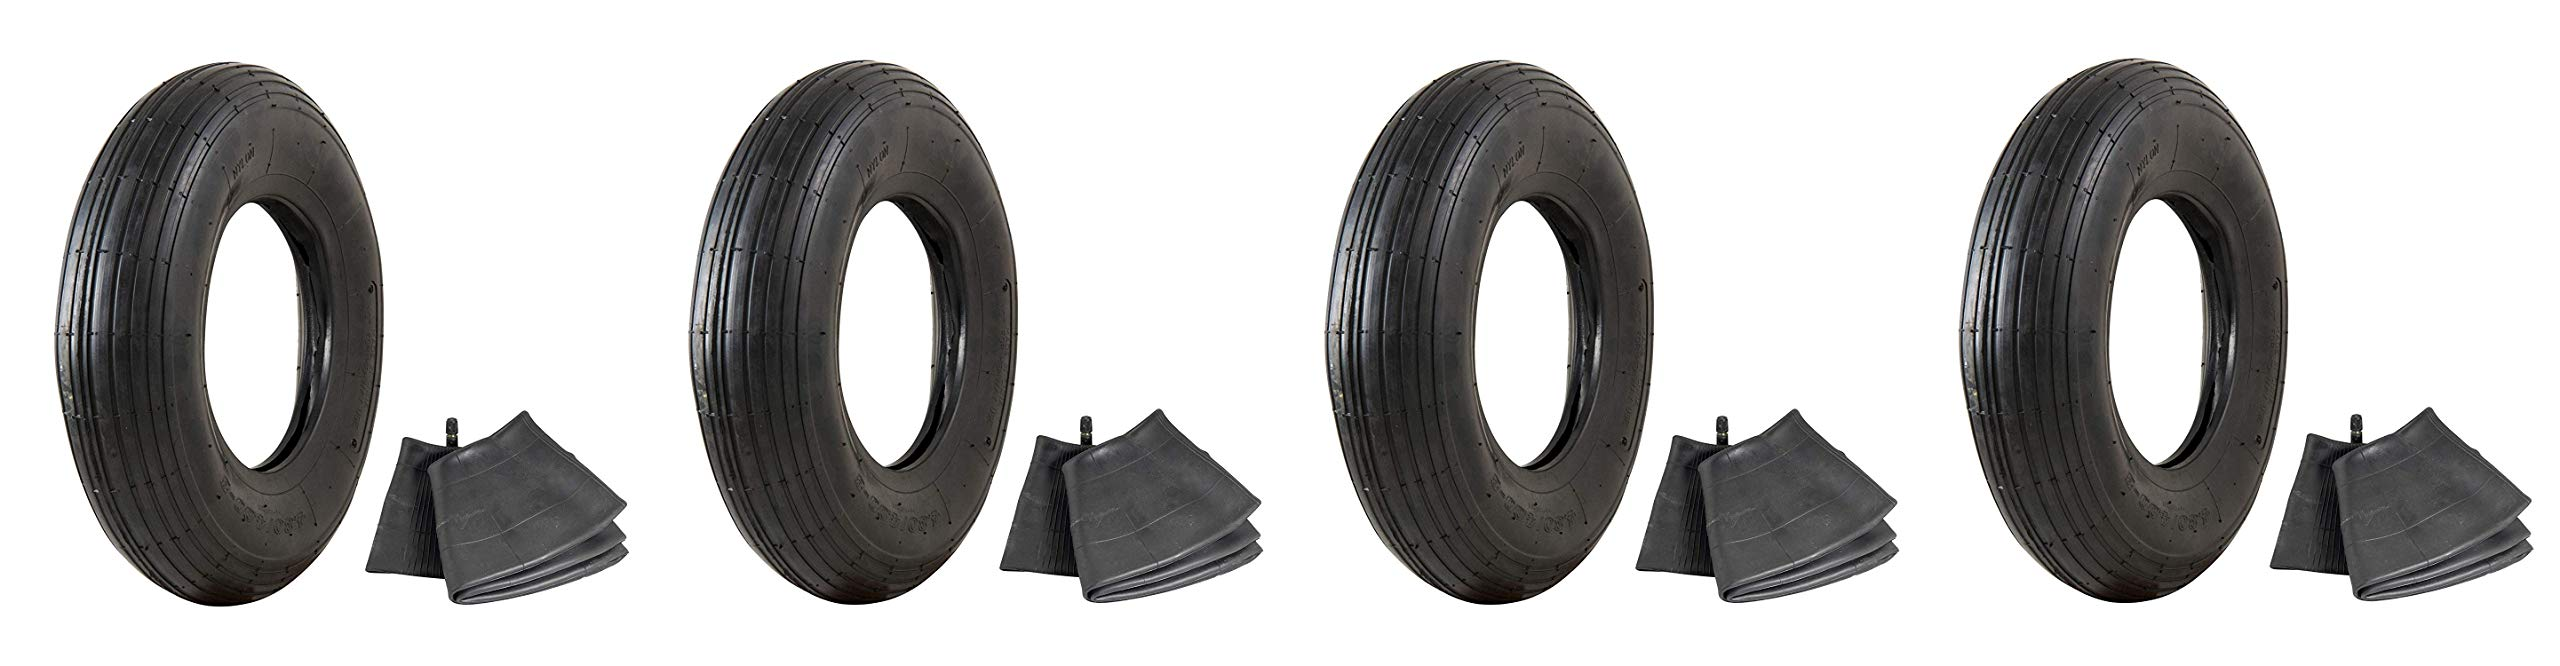 Marathon Industries 4.80/4.00-8'' Replacement Pneumatic Wheel Tire and Tube (Pack of 4) by Marathon Industries